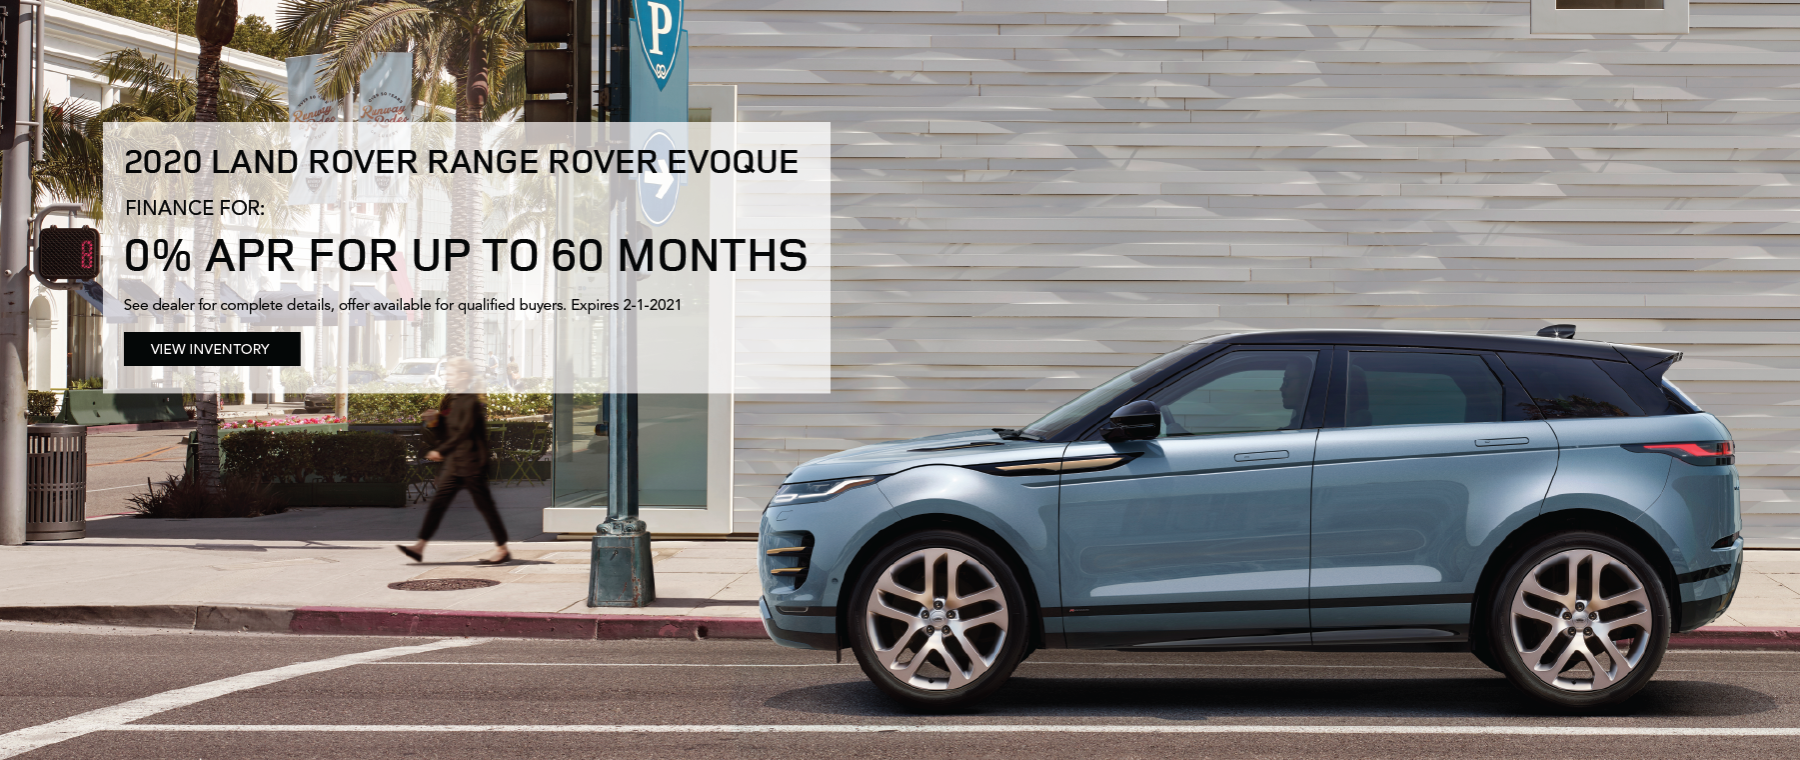 BLUE 2020 RANGE ROVER EVOQUE ON ROAD NEAR LAMP AND PALM TREES. ALL 2020 RANGE ROVER EVOQUE MODELS. FINANCE AT 0% APR FOR 24 TO 60 MONTHS. EXCLUDES TAXES, TITLE, LICENSE AND FEES. OFFER ENDS 2/1/2021. CLICK TO VIEW INVENTORY.